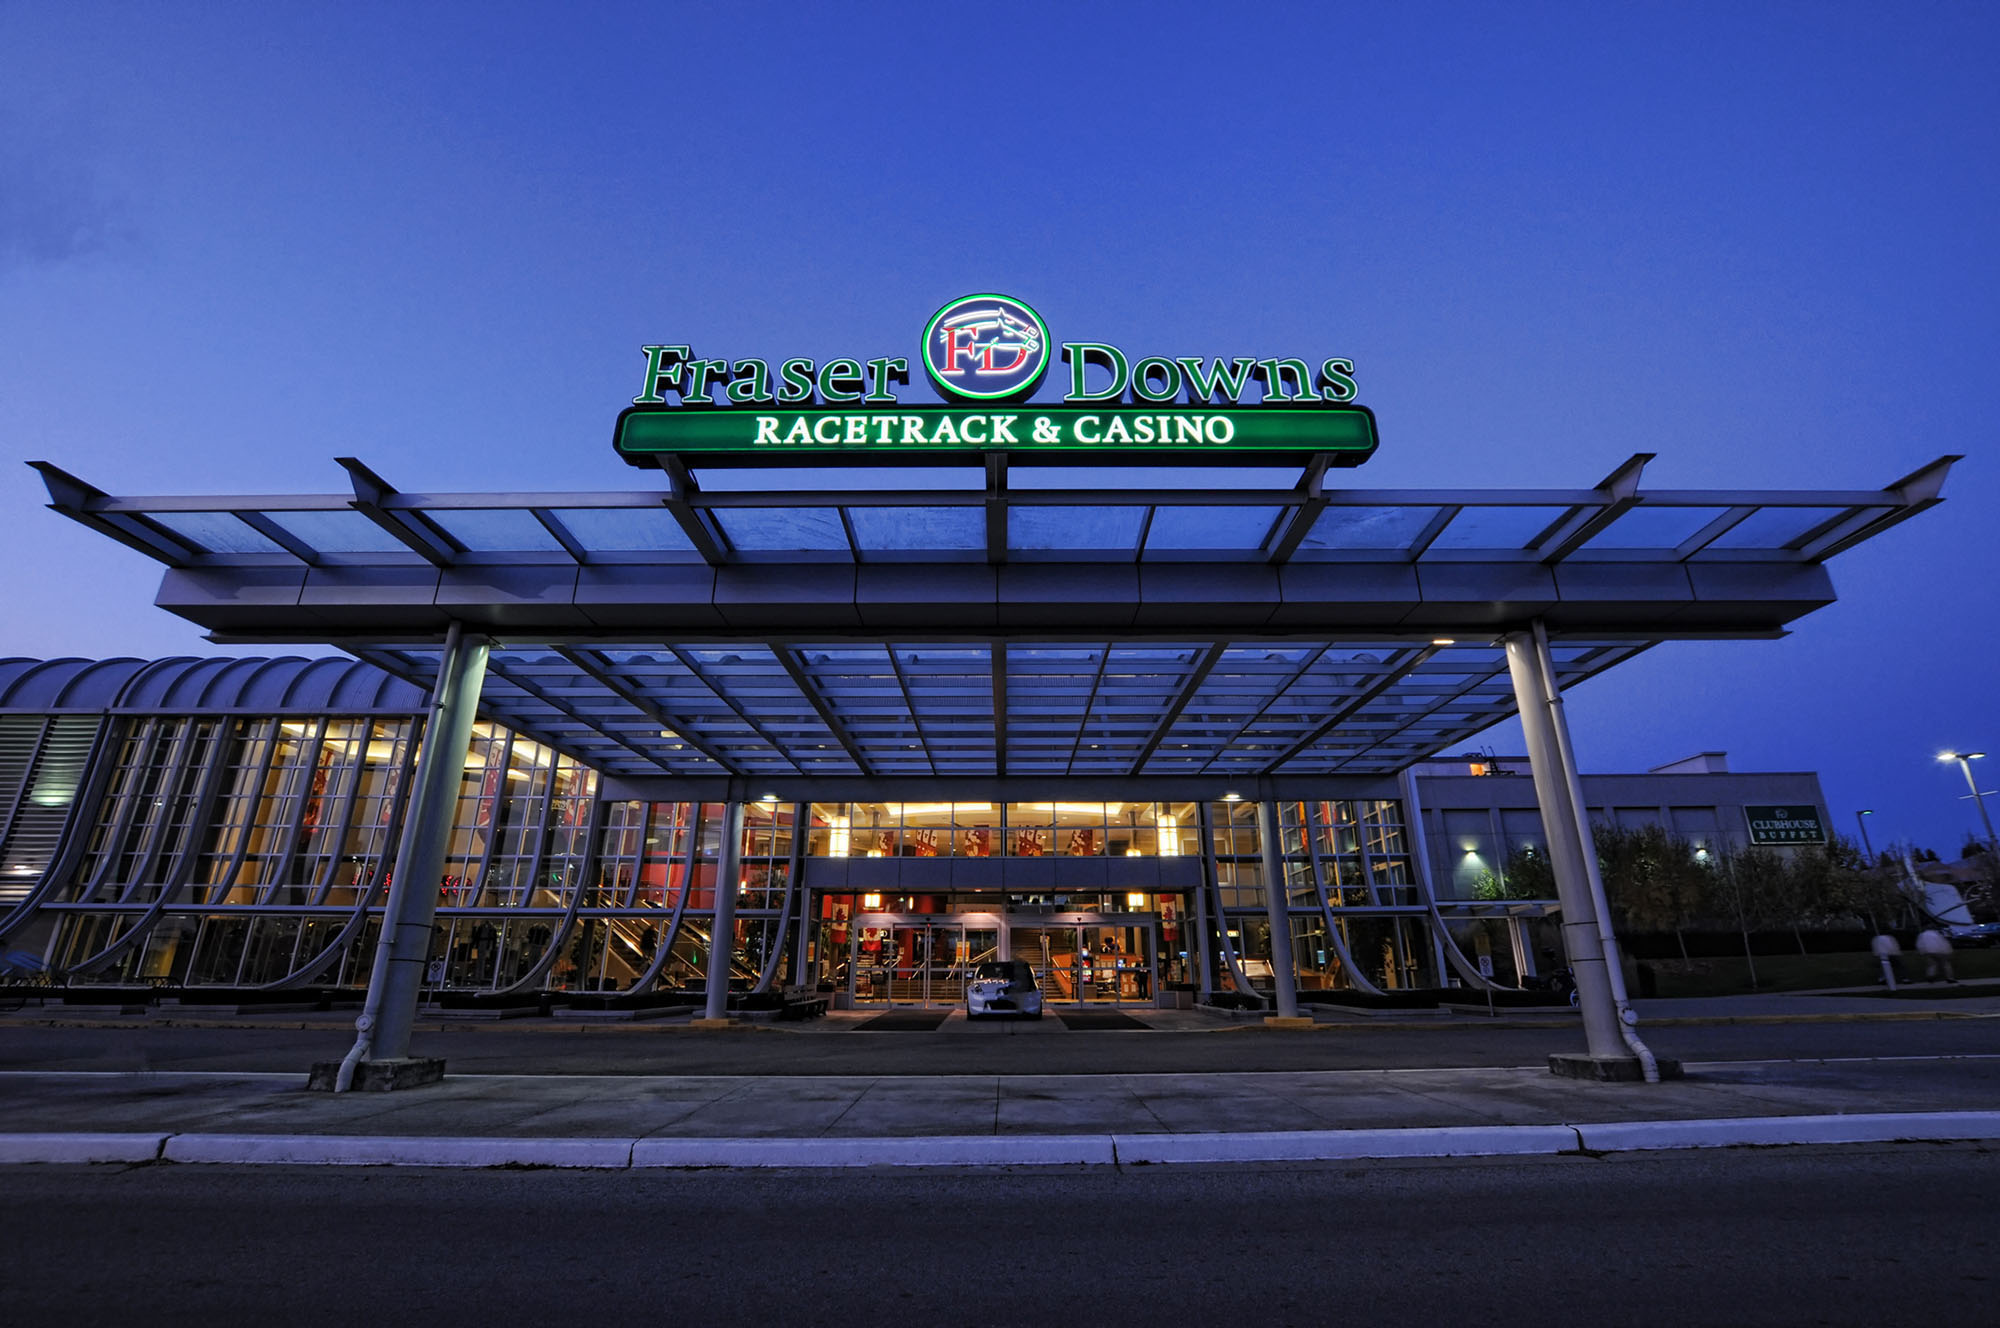 Fraser Downs Casino